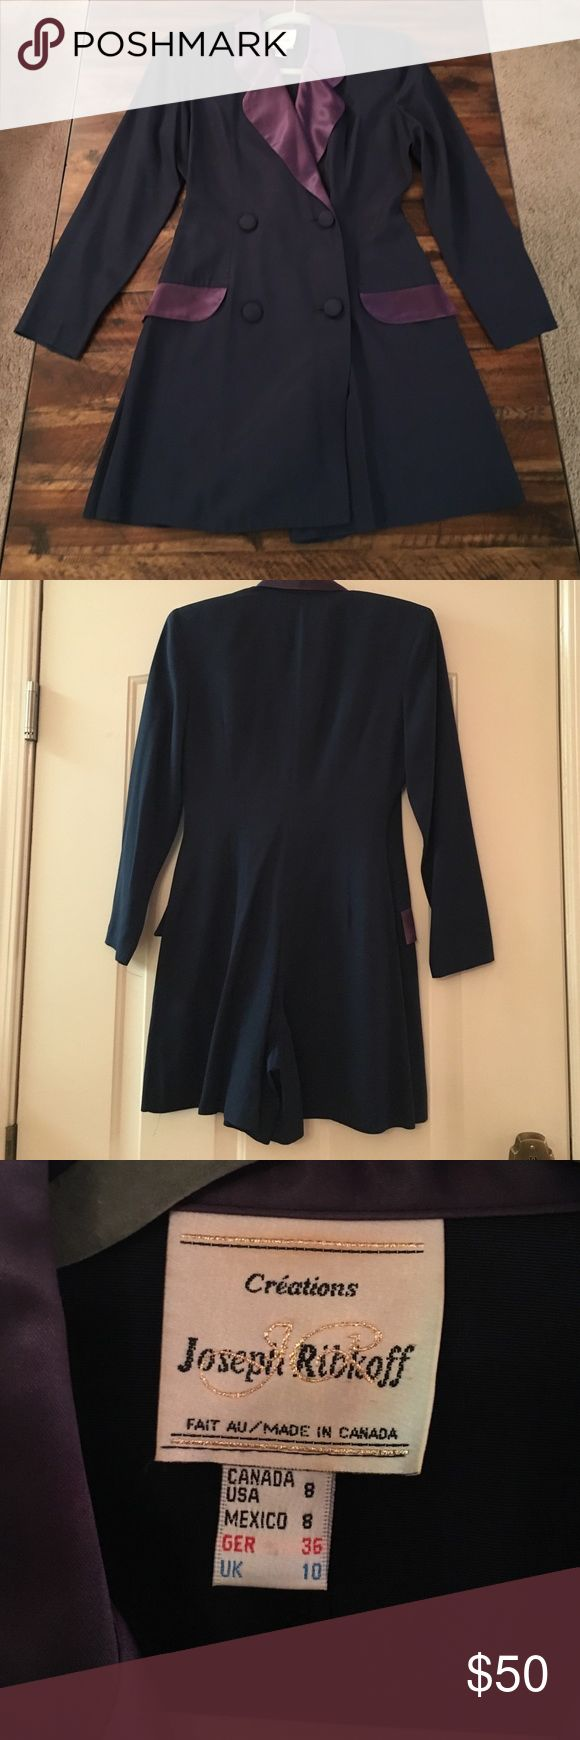 Super cute Vintage Tuxedo jacket romper Super cute 80's Vintage Tuxedo jacket romper. Navy exterior with purplish satin lapels. Appears like a tuxedo mini dress but is a romper from the back. So 80's and so cute! Joseph Ribkoff Dresses Mini